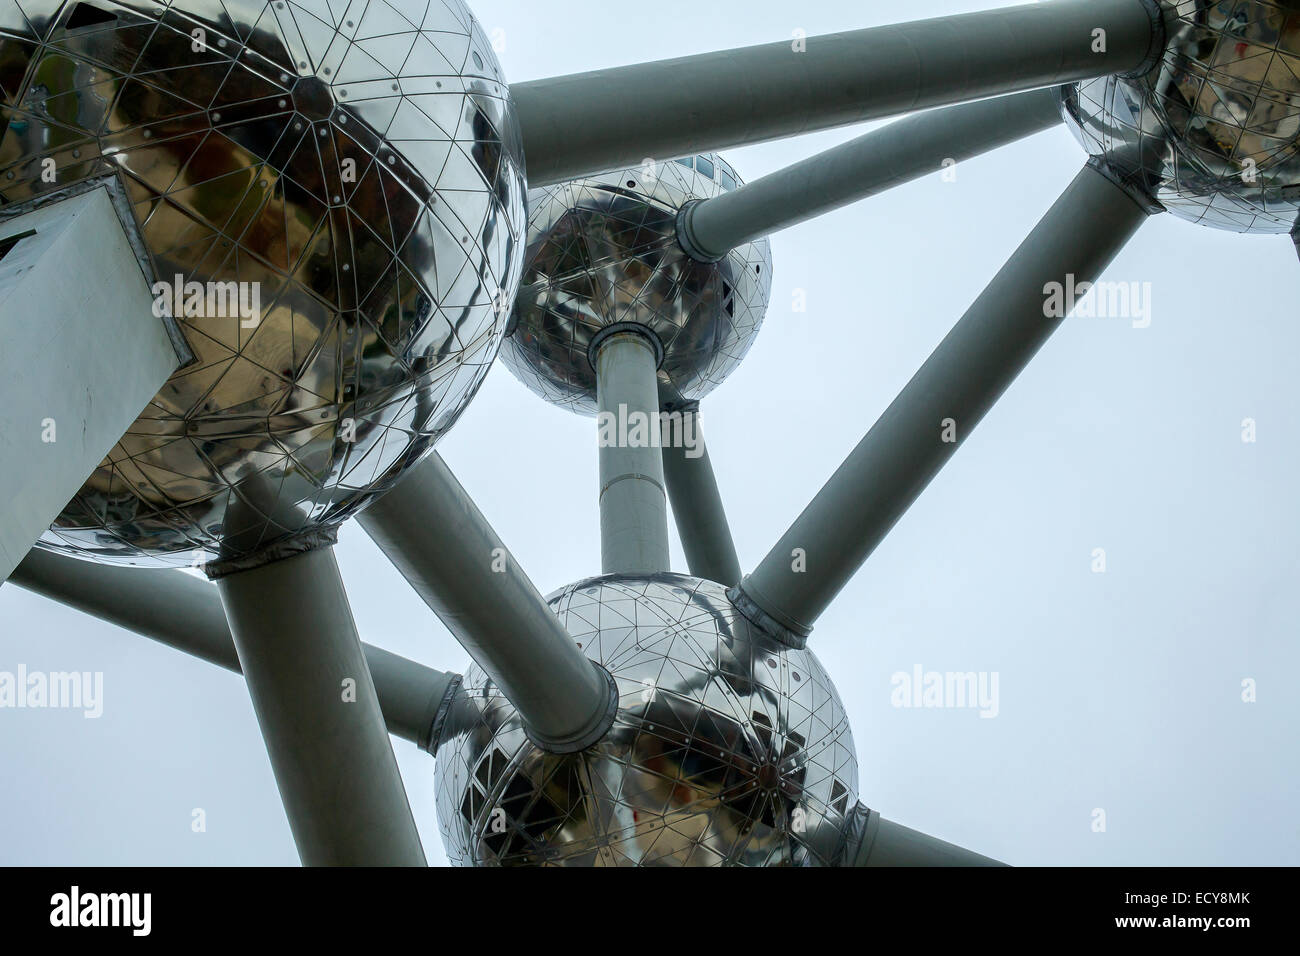 Atomium structure in Brussels. - Stock Image